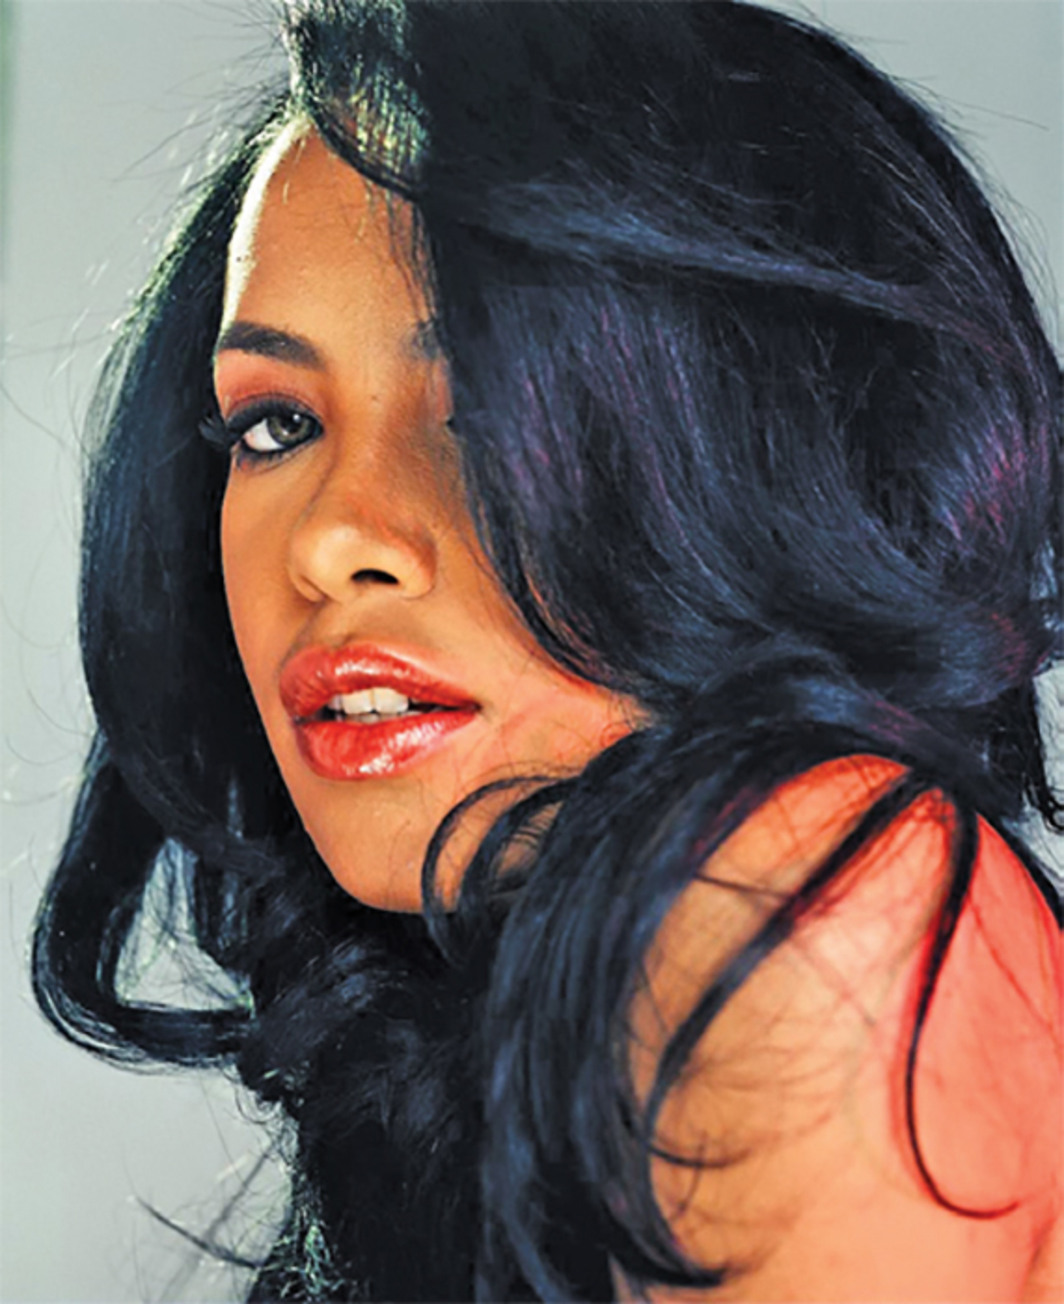 *Outtake from Aaliyah's editorial photo shoot for _Entertainment Weekly_, July 2001.* Photo: Eric Johnson.